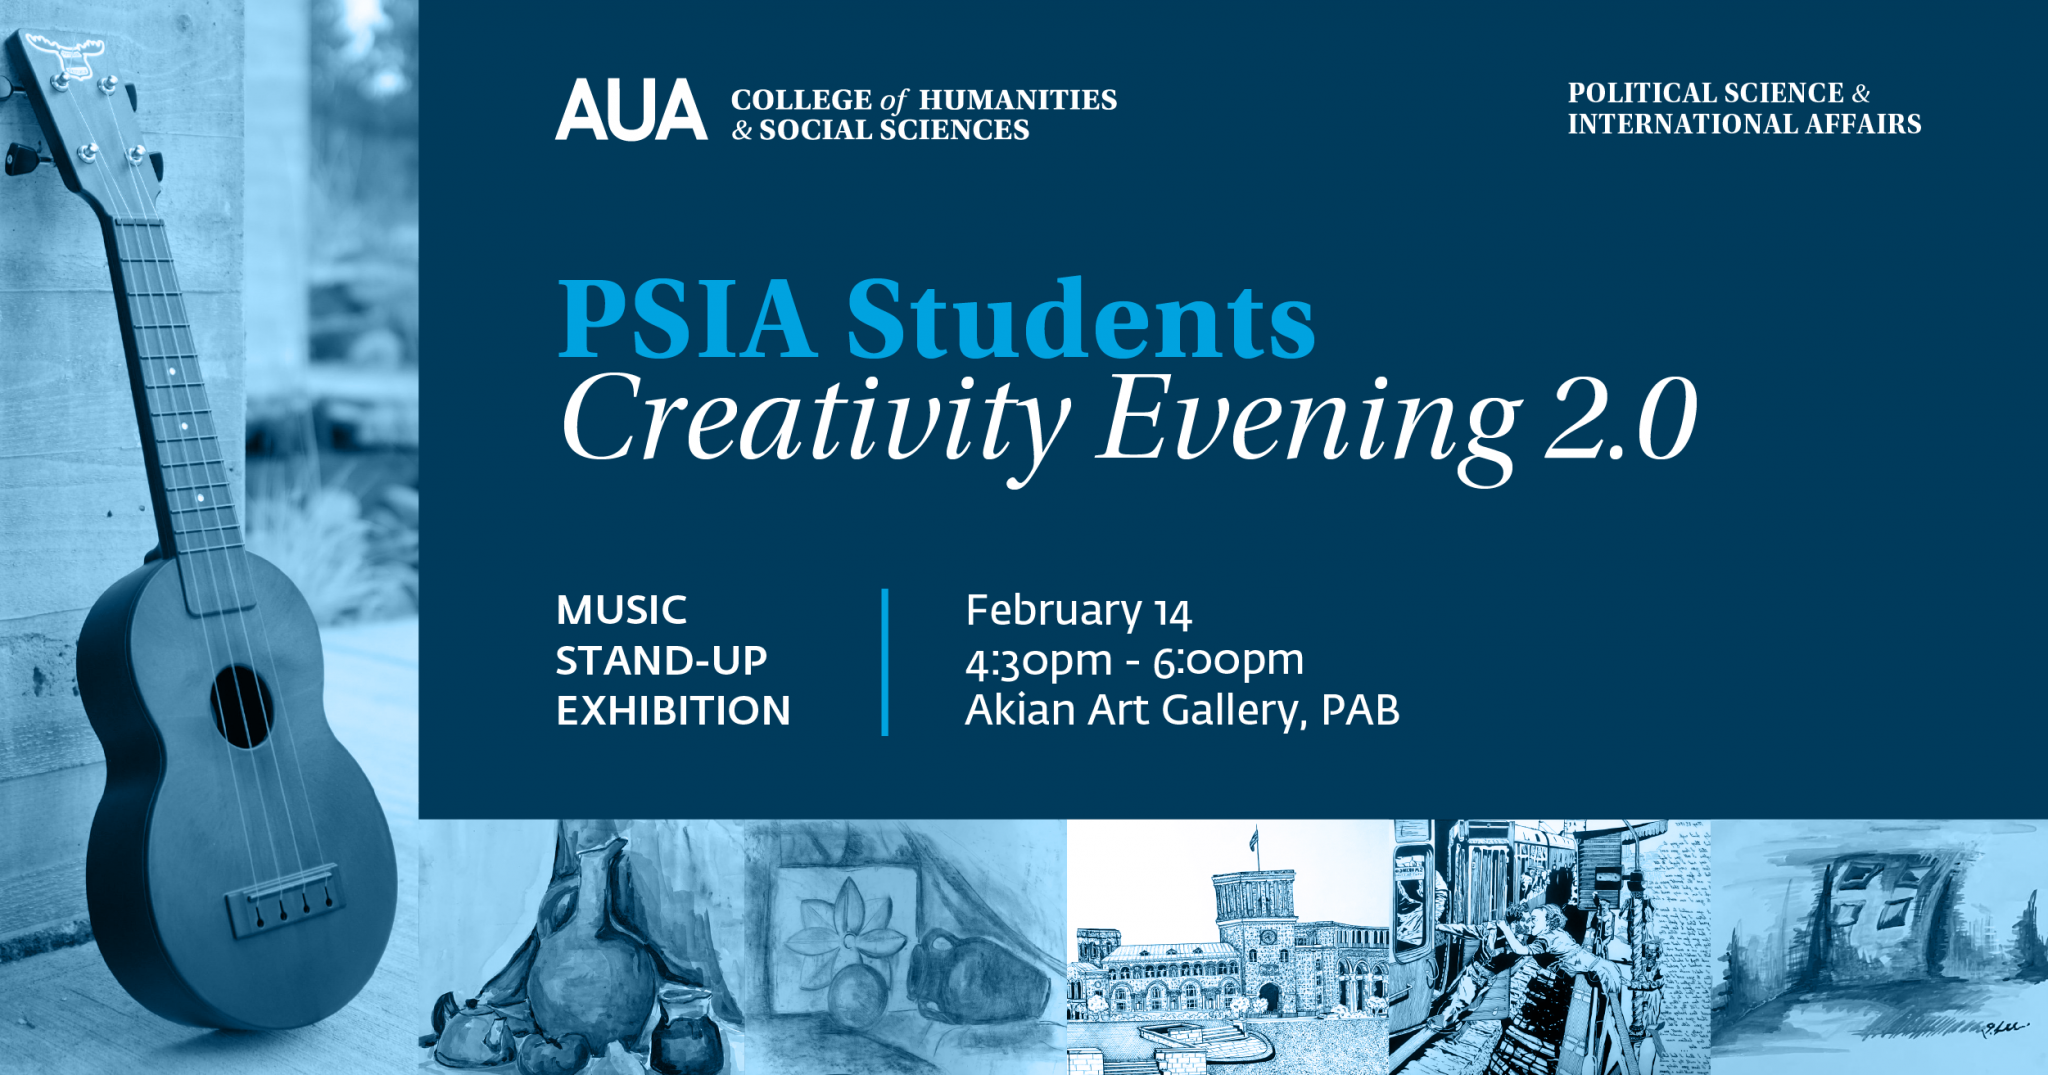 AUA_PSIA_Creativity_Evening